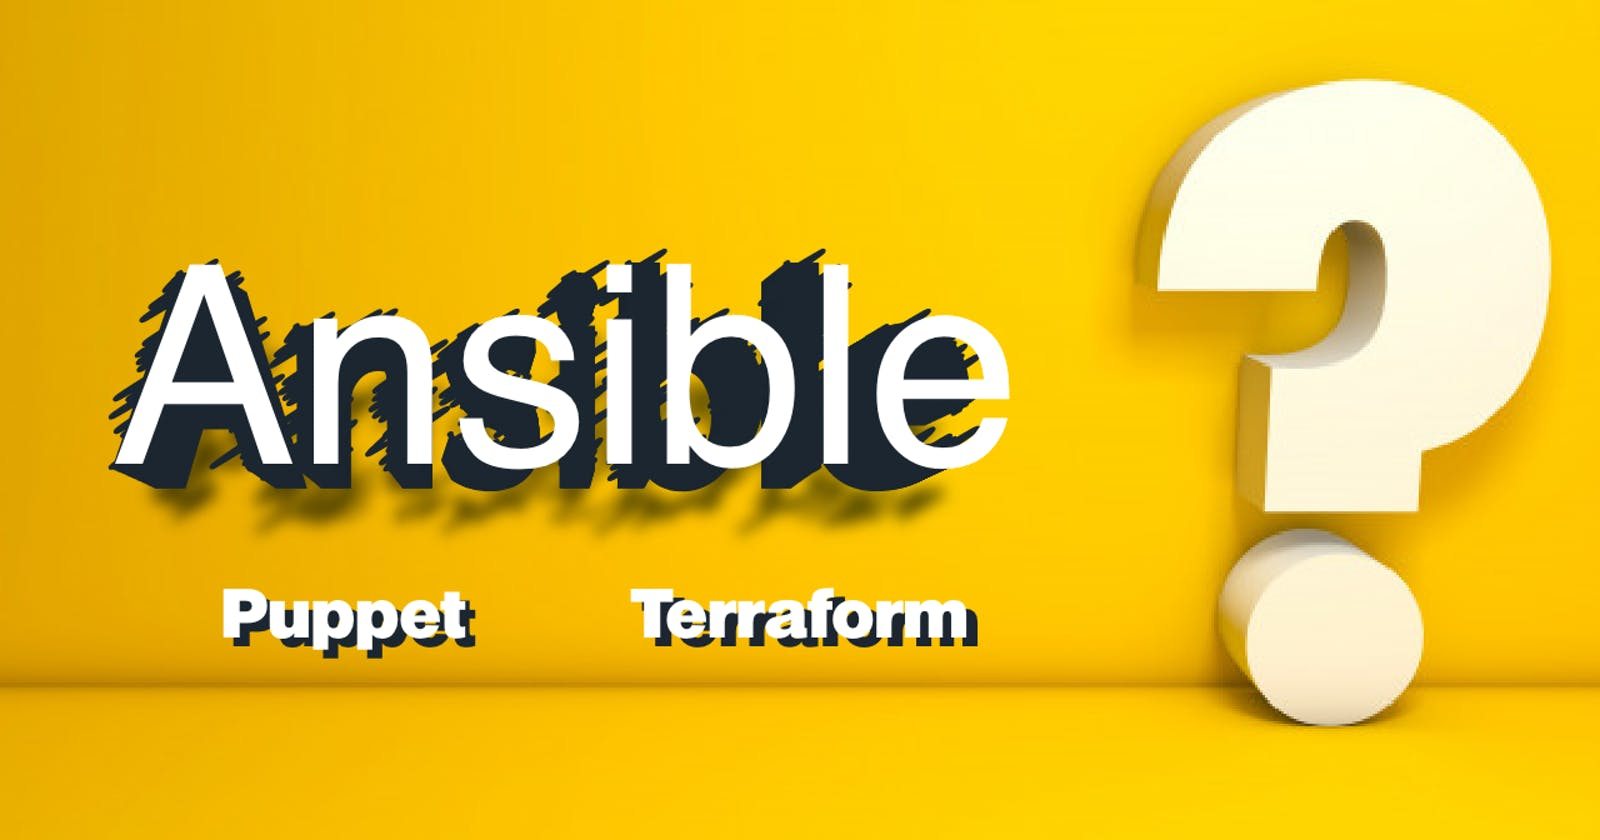 Why Ansible? A comparative view: Ansible vs Puppet vs Terraform